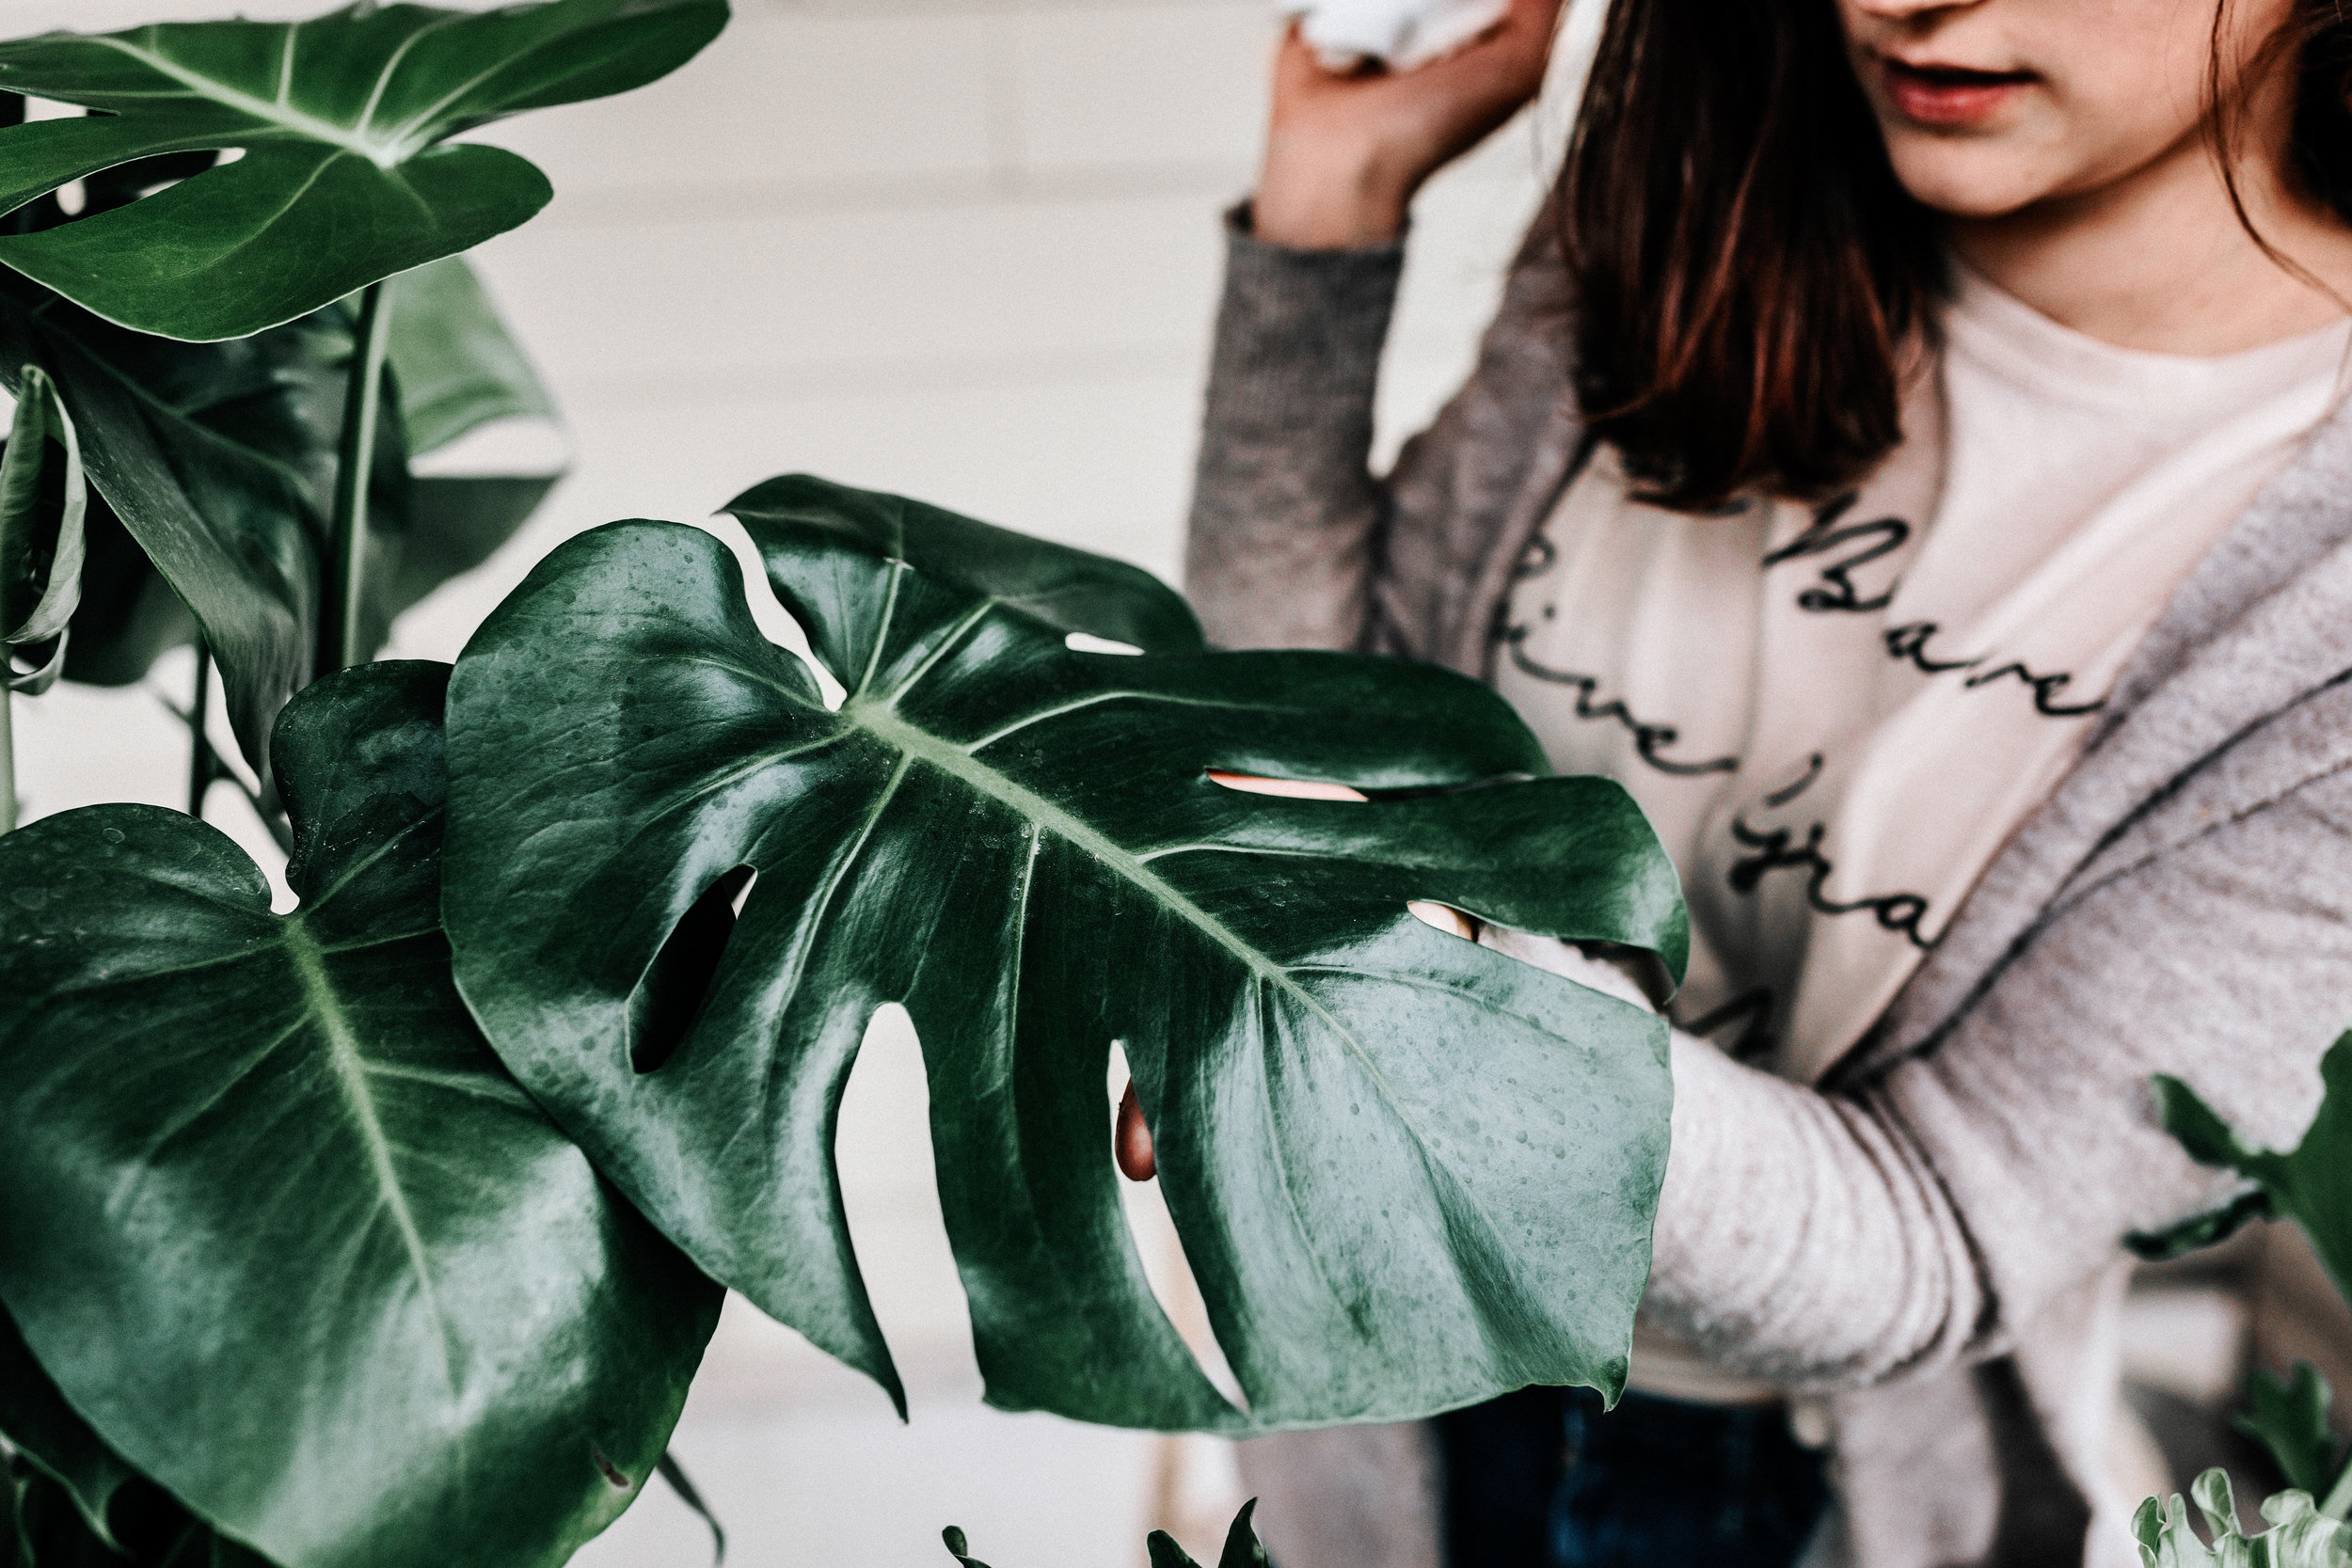 Keep your the leaves free of dusty and debris - Monstera houseplant care guide by Revive Nursery